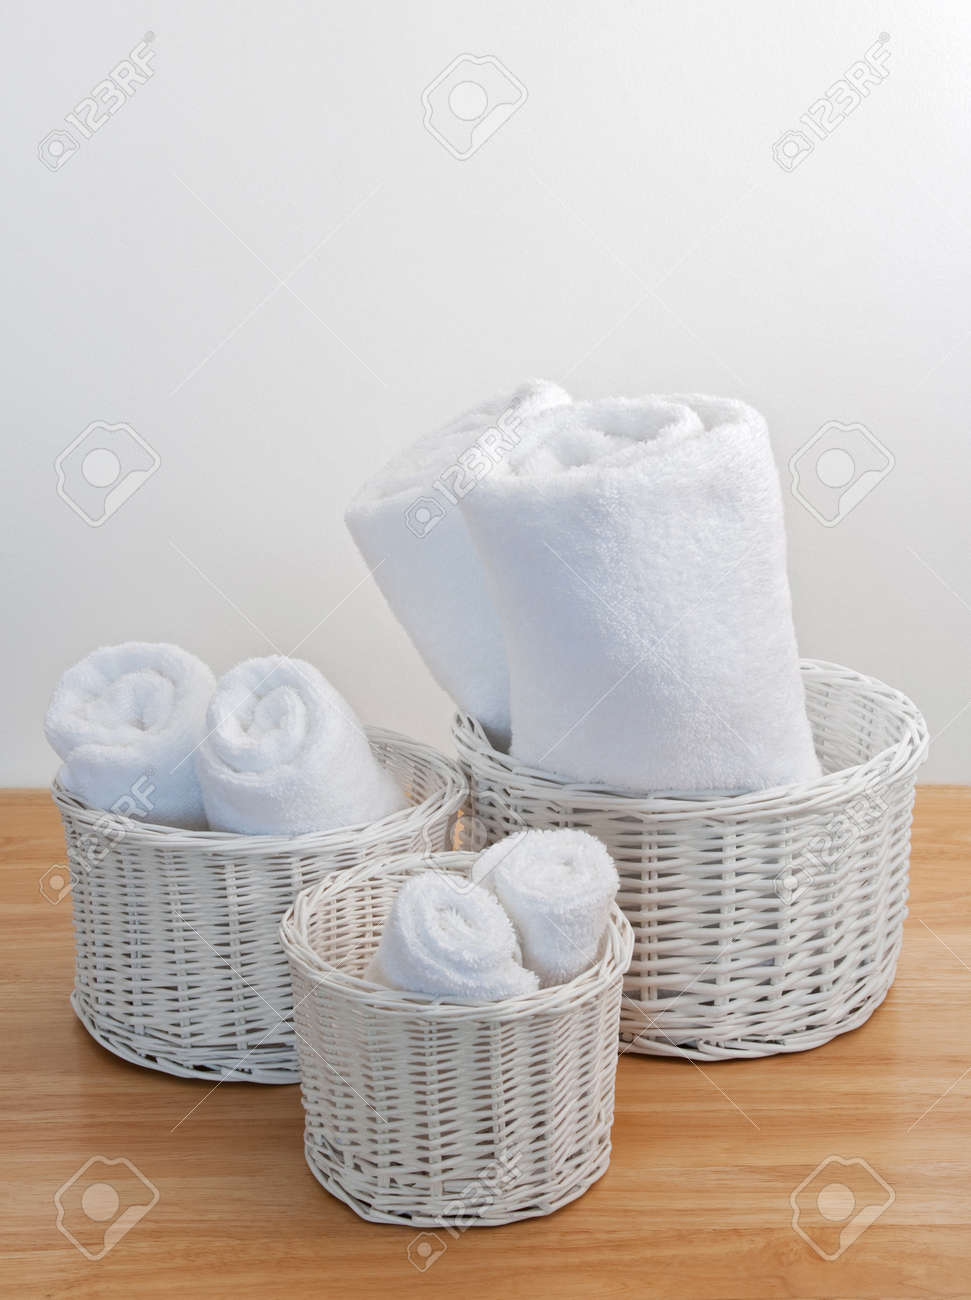 clean towels in white wicker baskets on a wooden surface stock photo